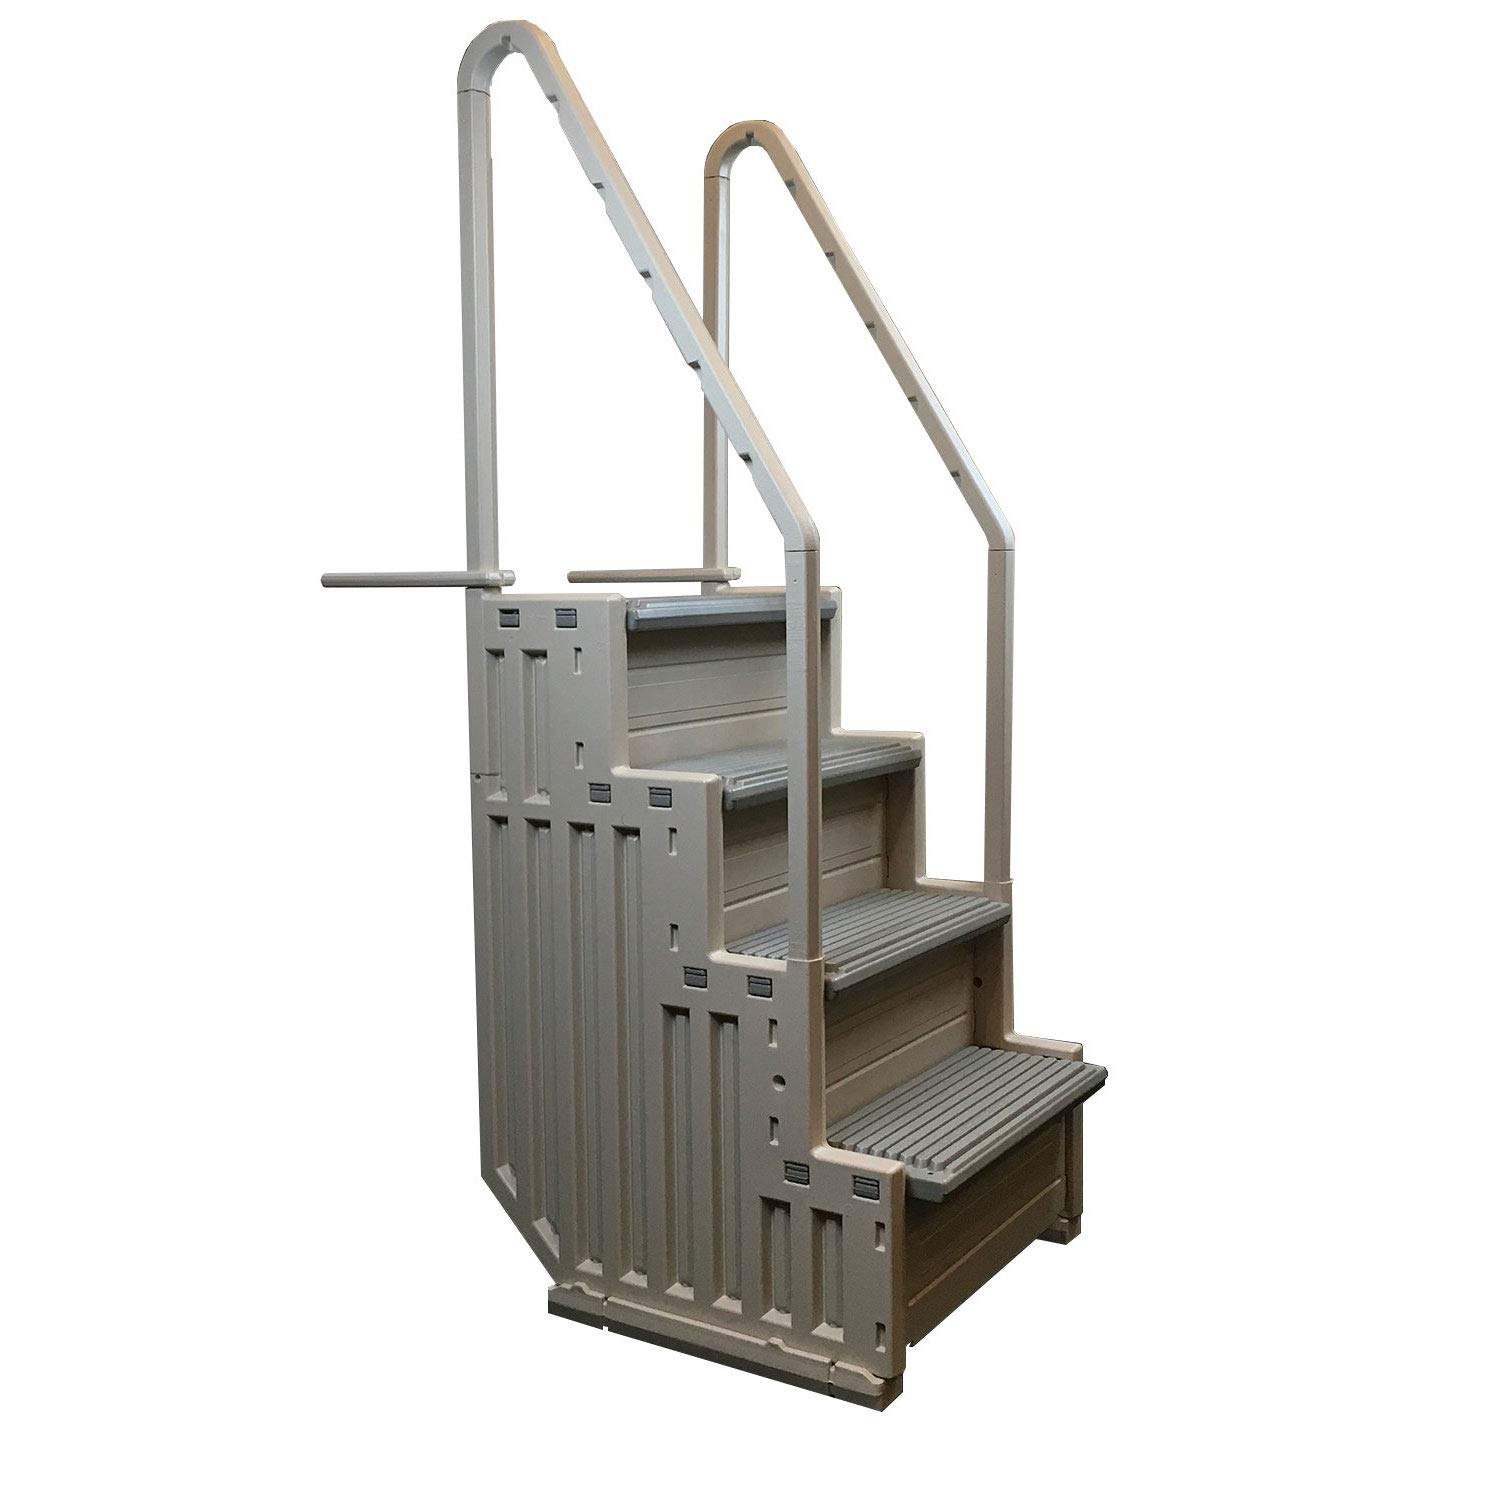 Top 5 Best Swimming Pool Steps And Ladder Reviews in 2020 1